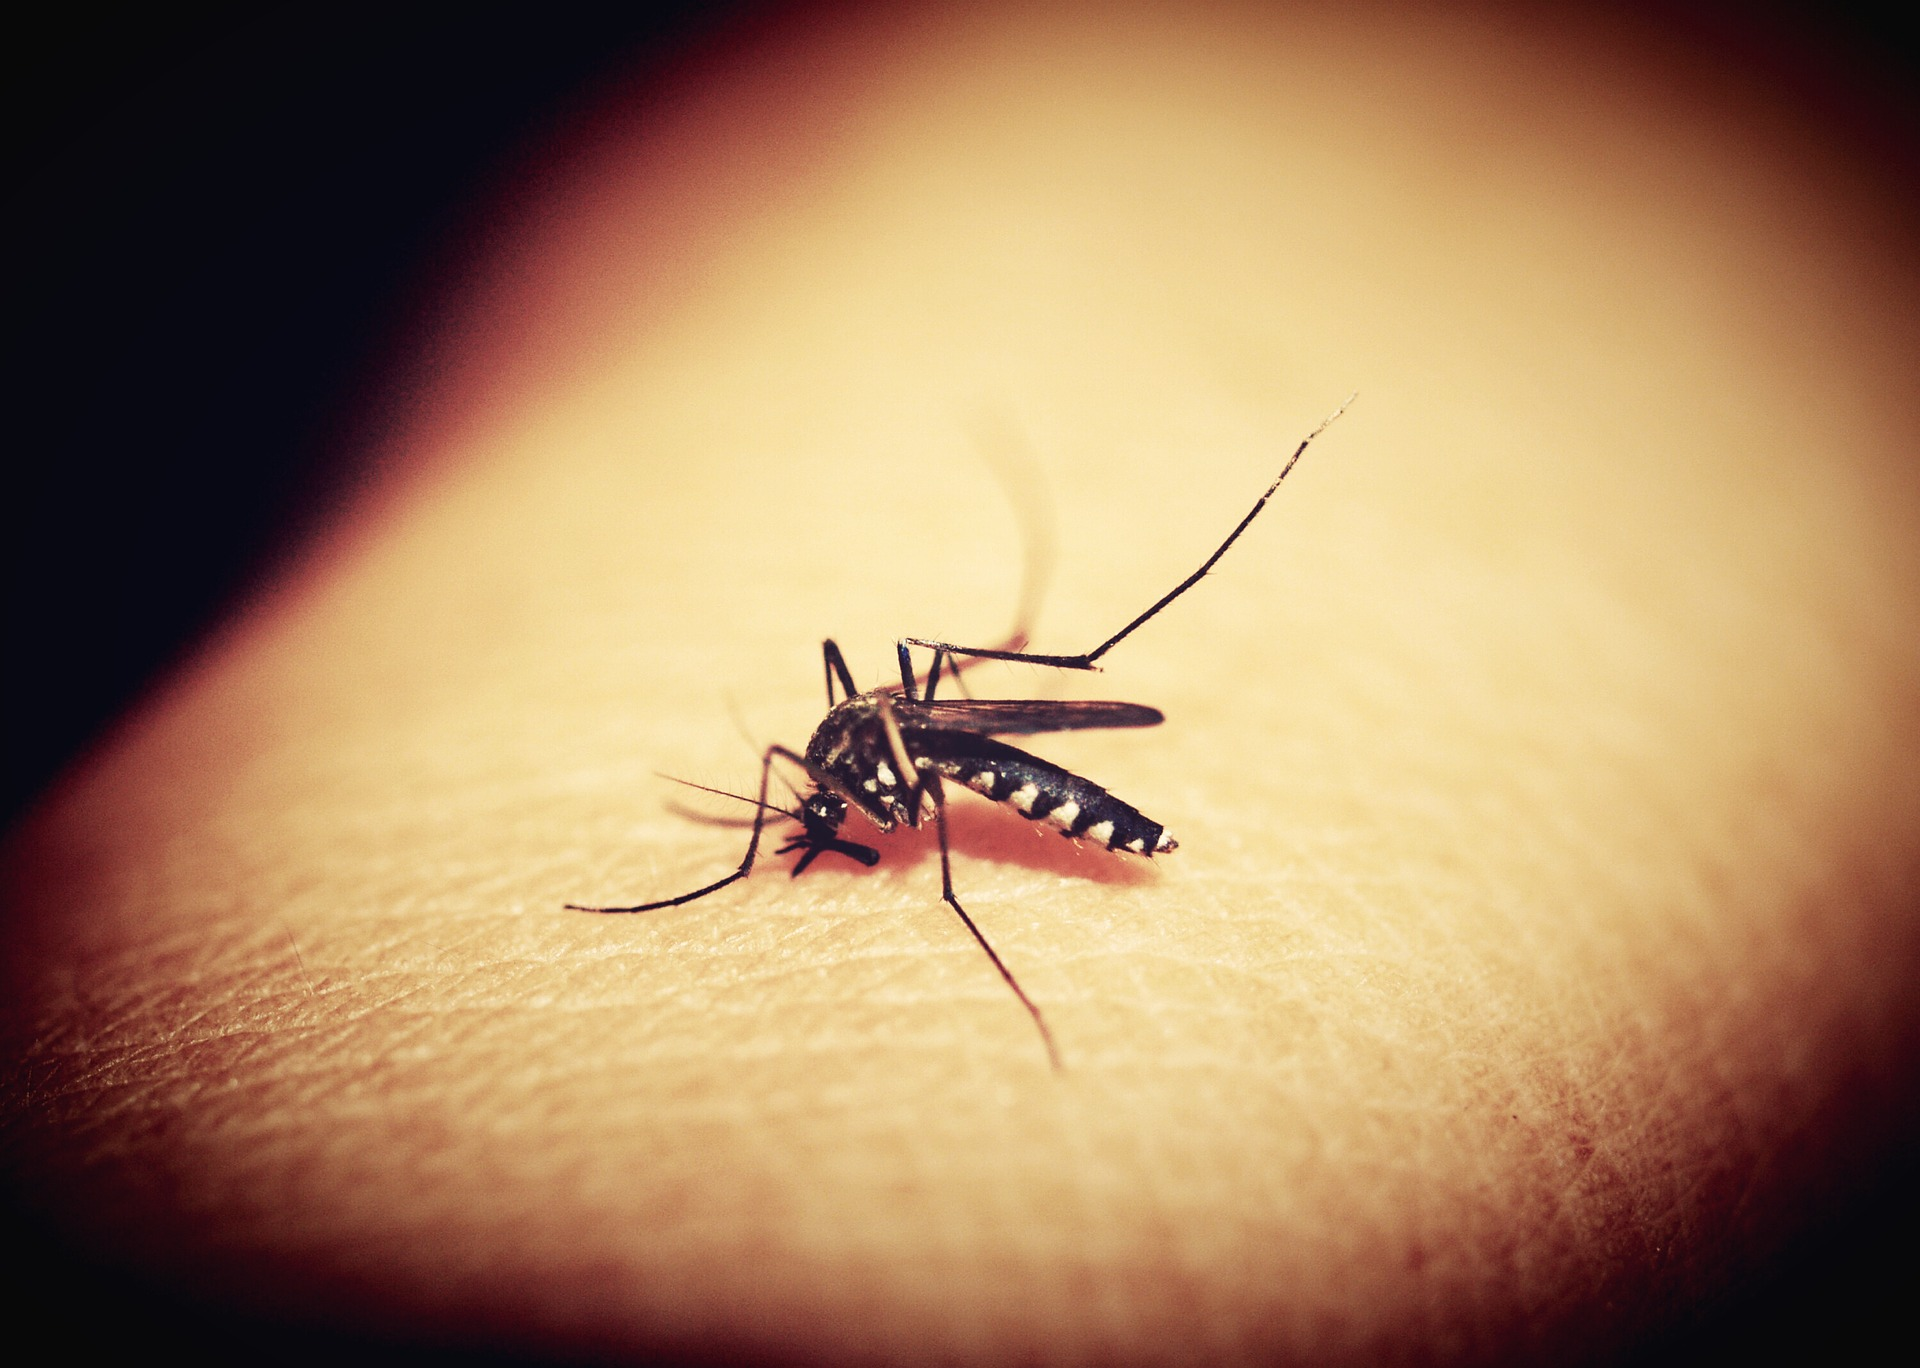 Malaria, the mosquito-borne disease, caused 212 million clinical episodes and 429,000 deaths in 2015.